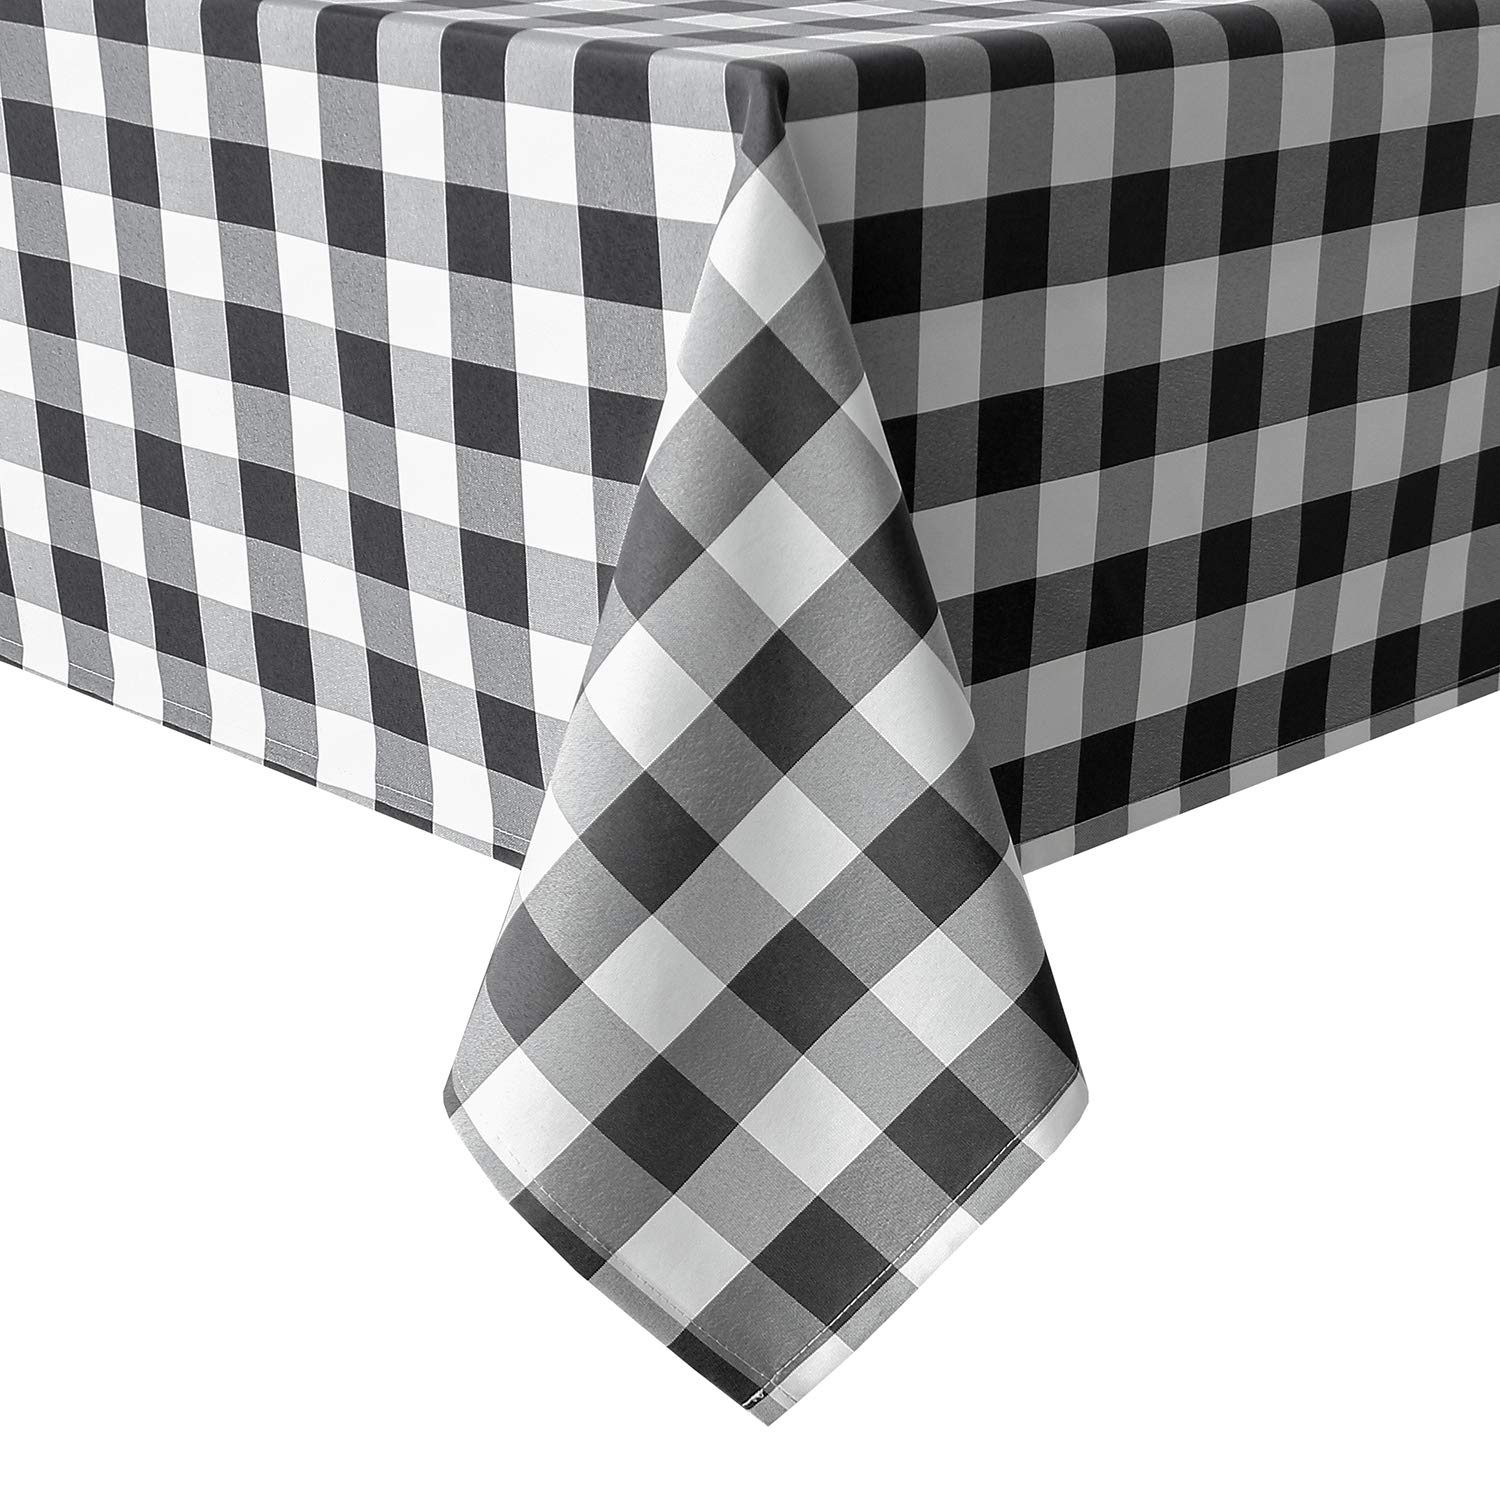 Homedocr 60 x 120 Inch Checkered Tablecloth Rectangle - Stain Resistant, Spillproof and Wahable Gingham Table Cloth for Outdoor Picnic, Kitchen and Holiday Dinner, Black and White